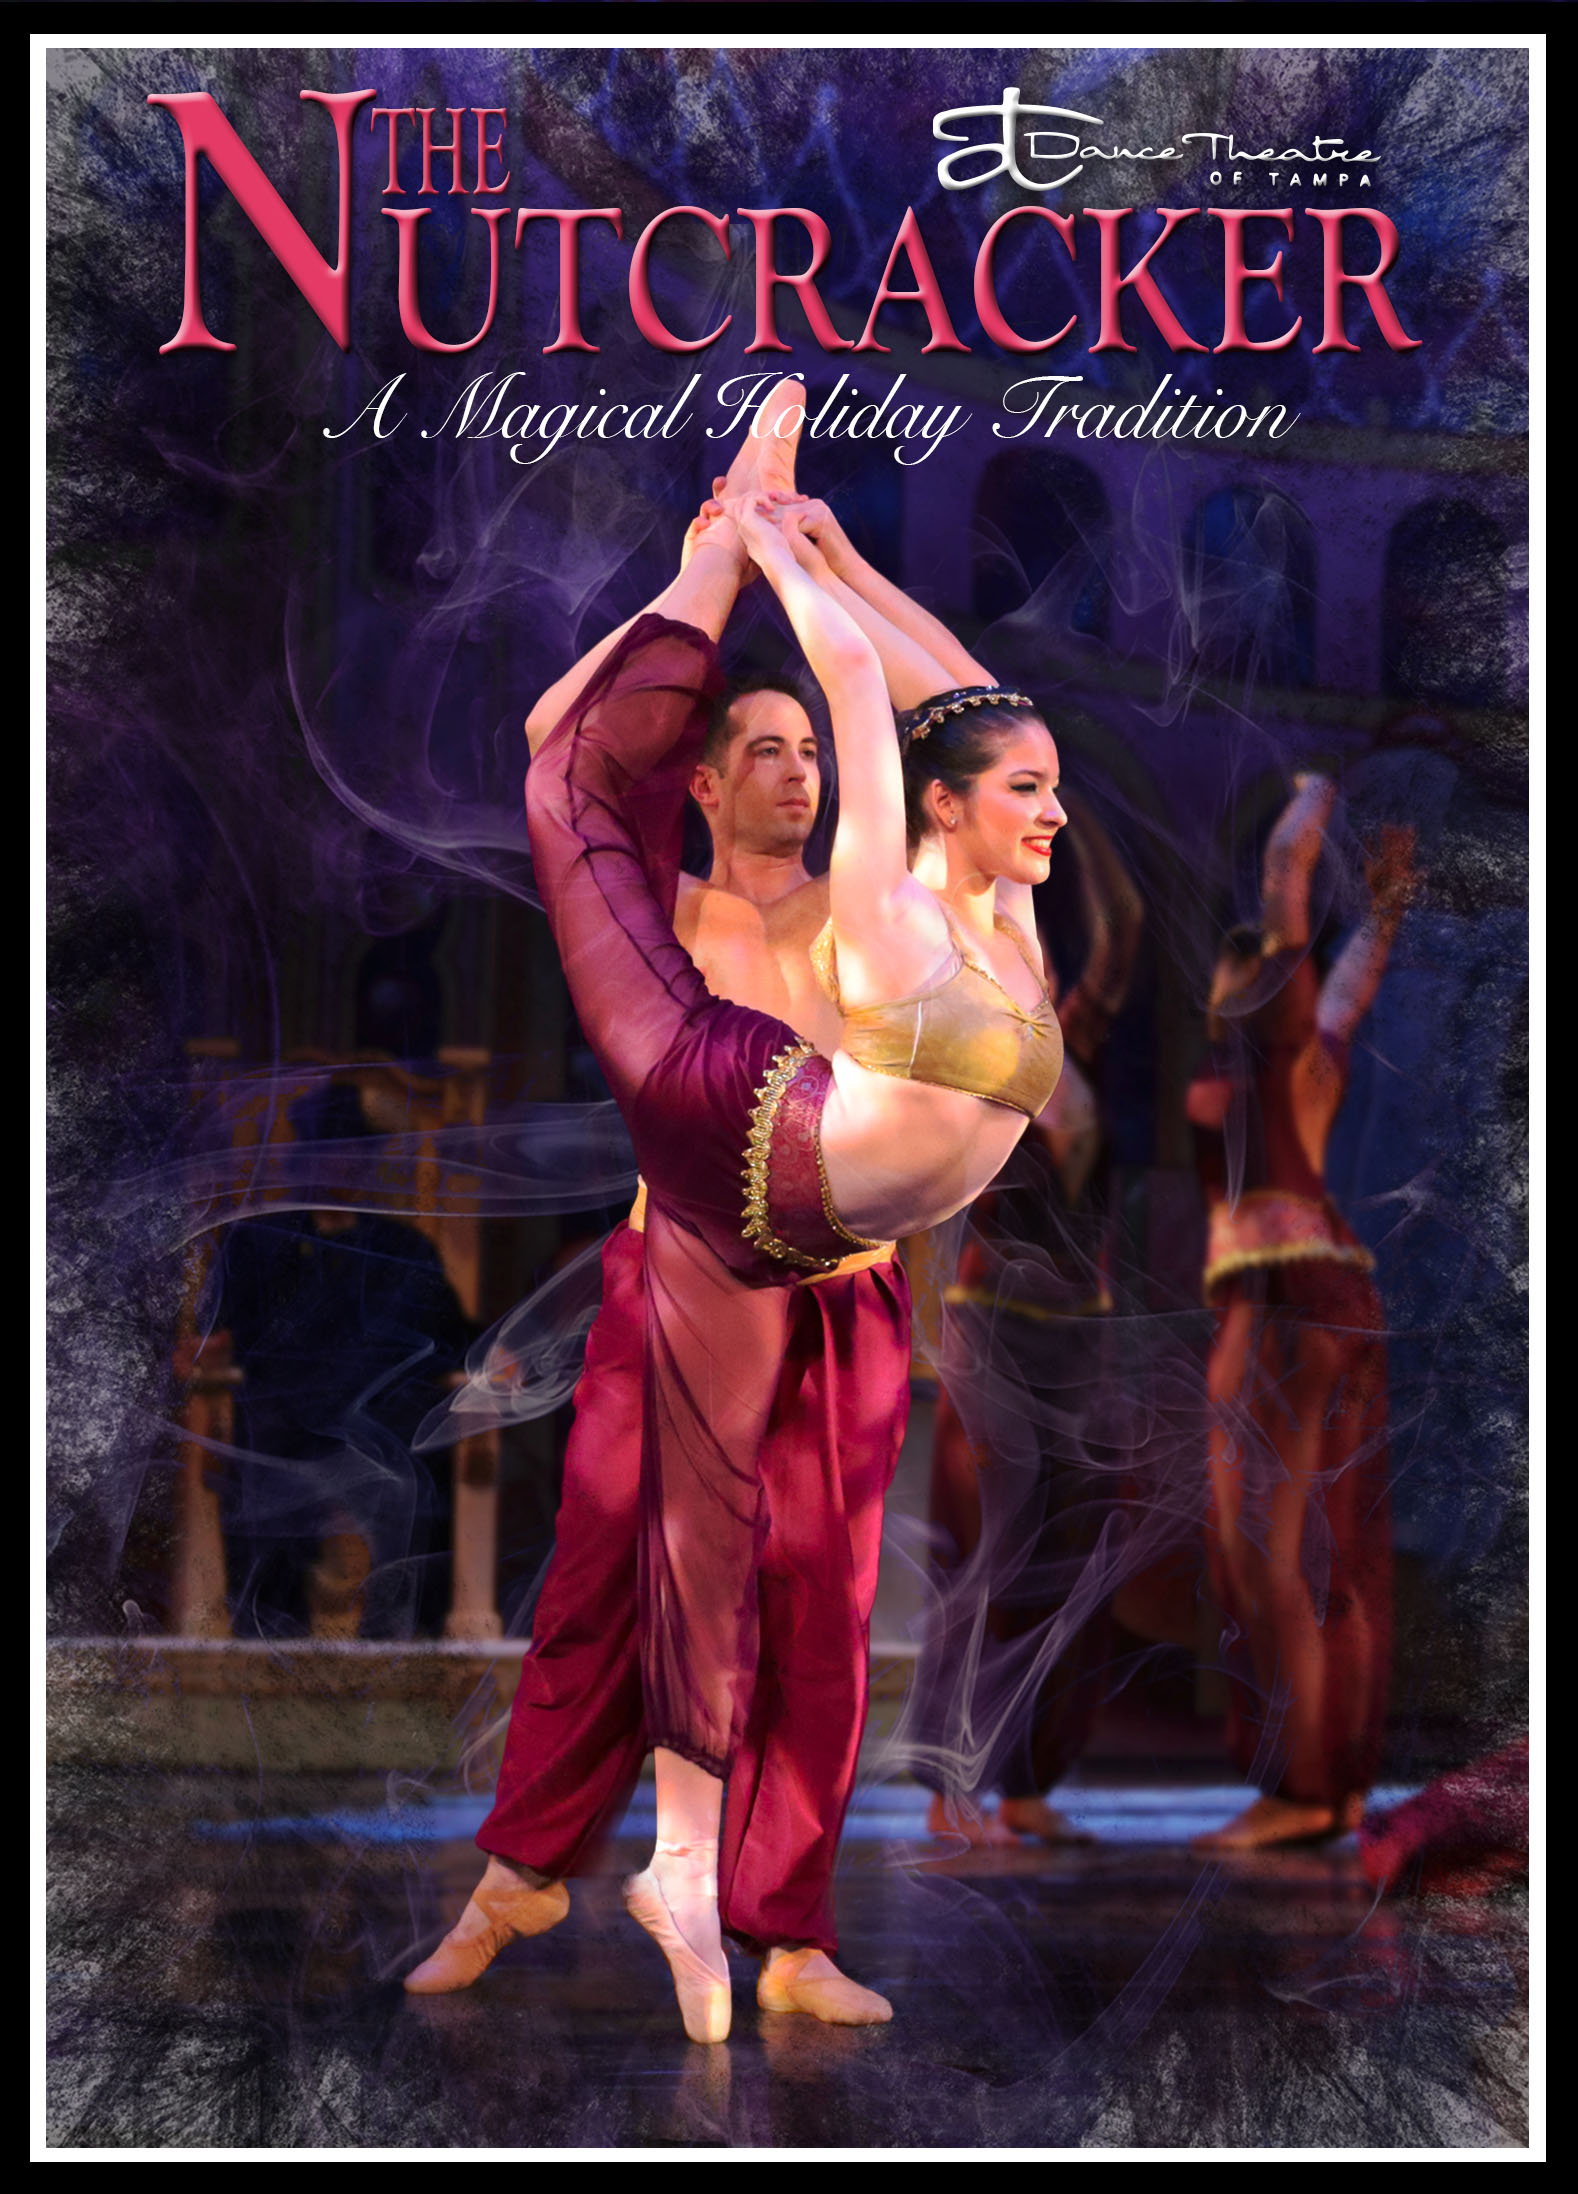 DTT's 17th Annual Production of The Nutcracker